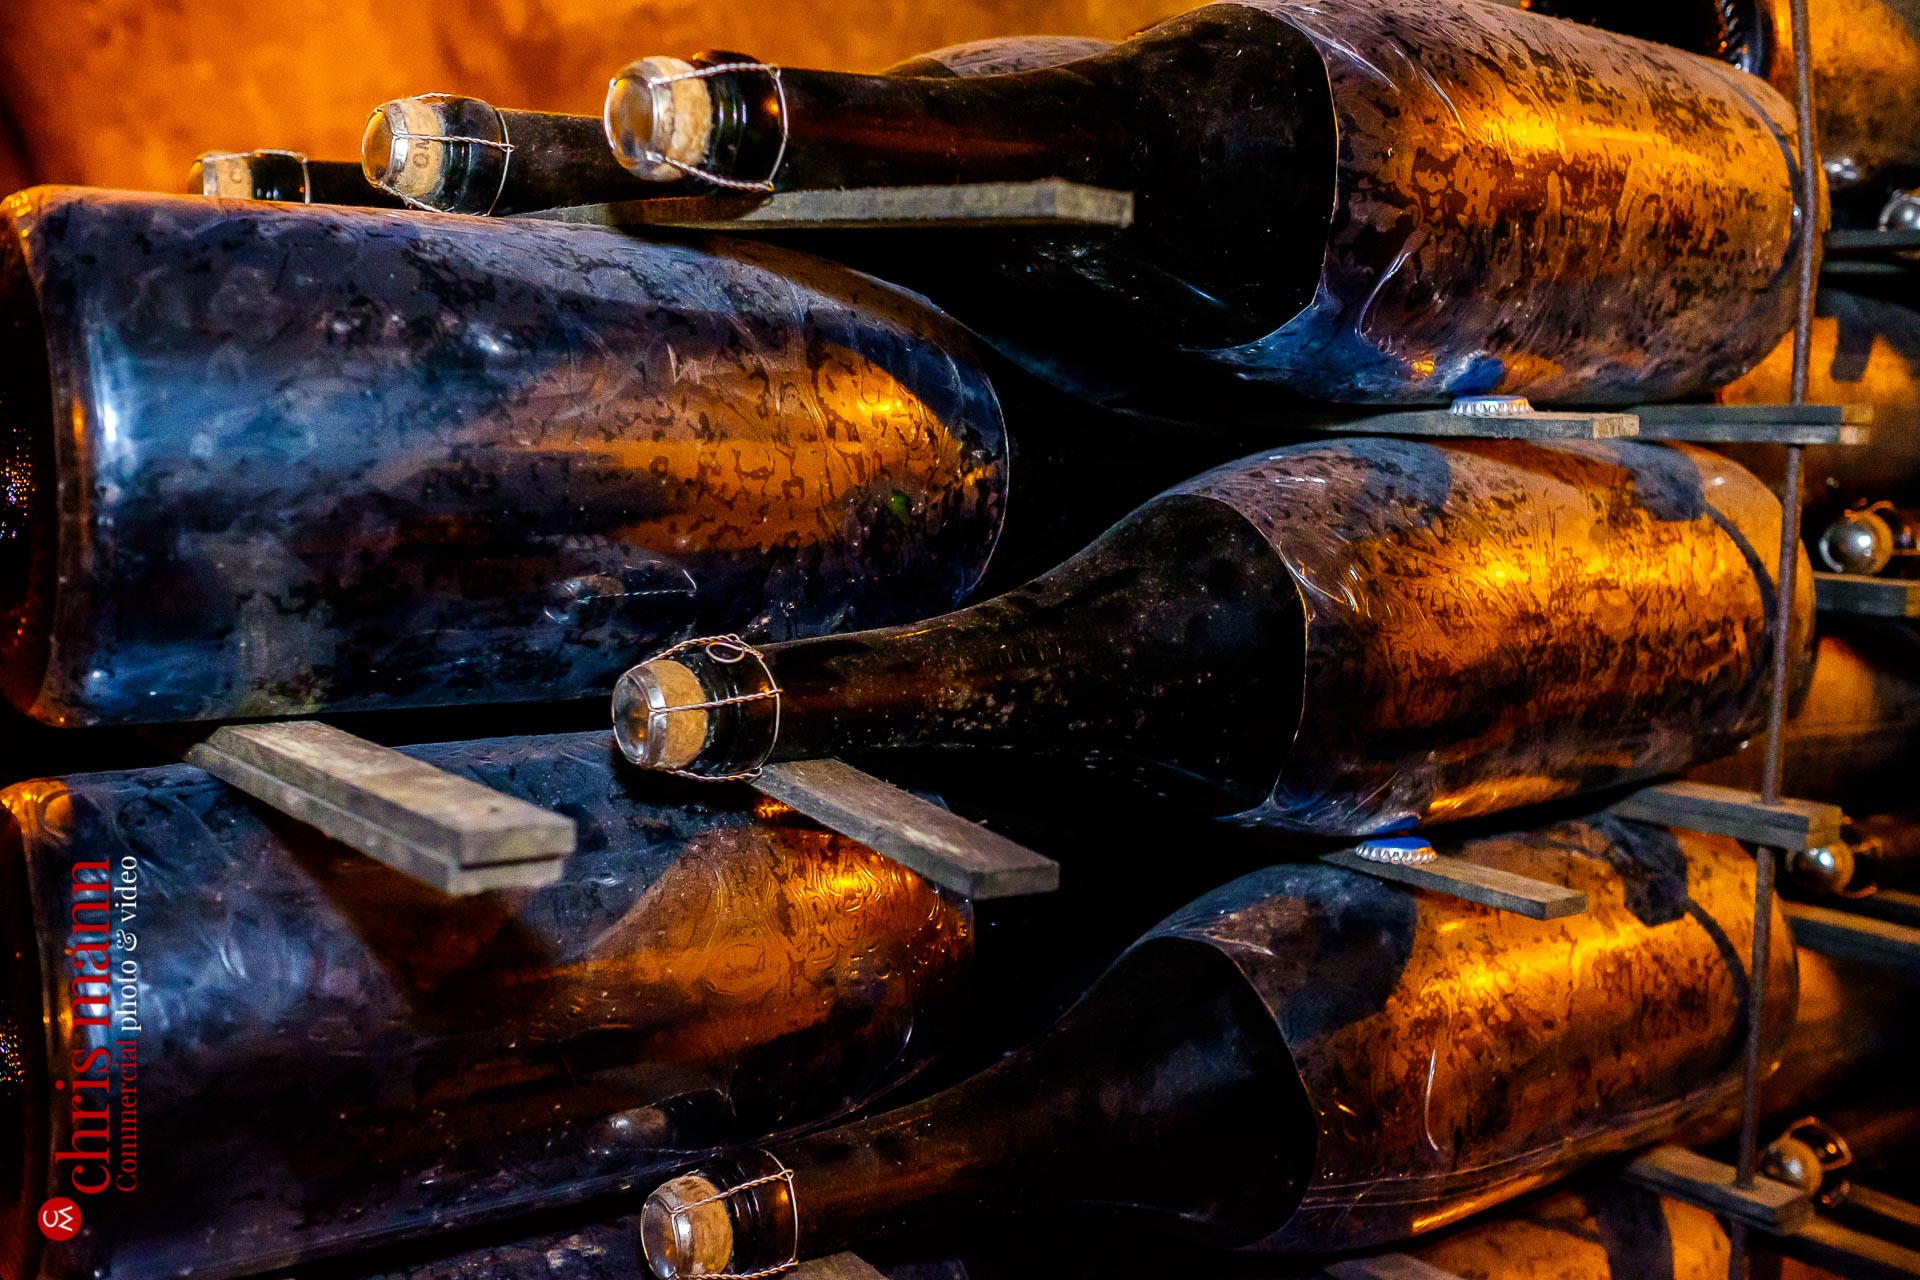 Taittinger champagne bottles close-up